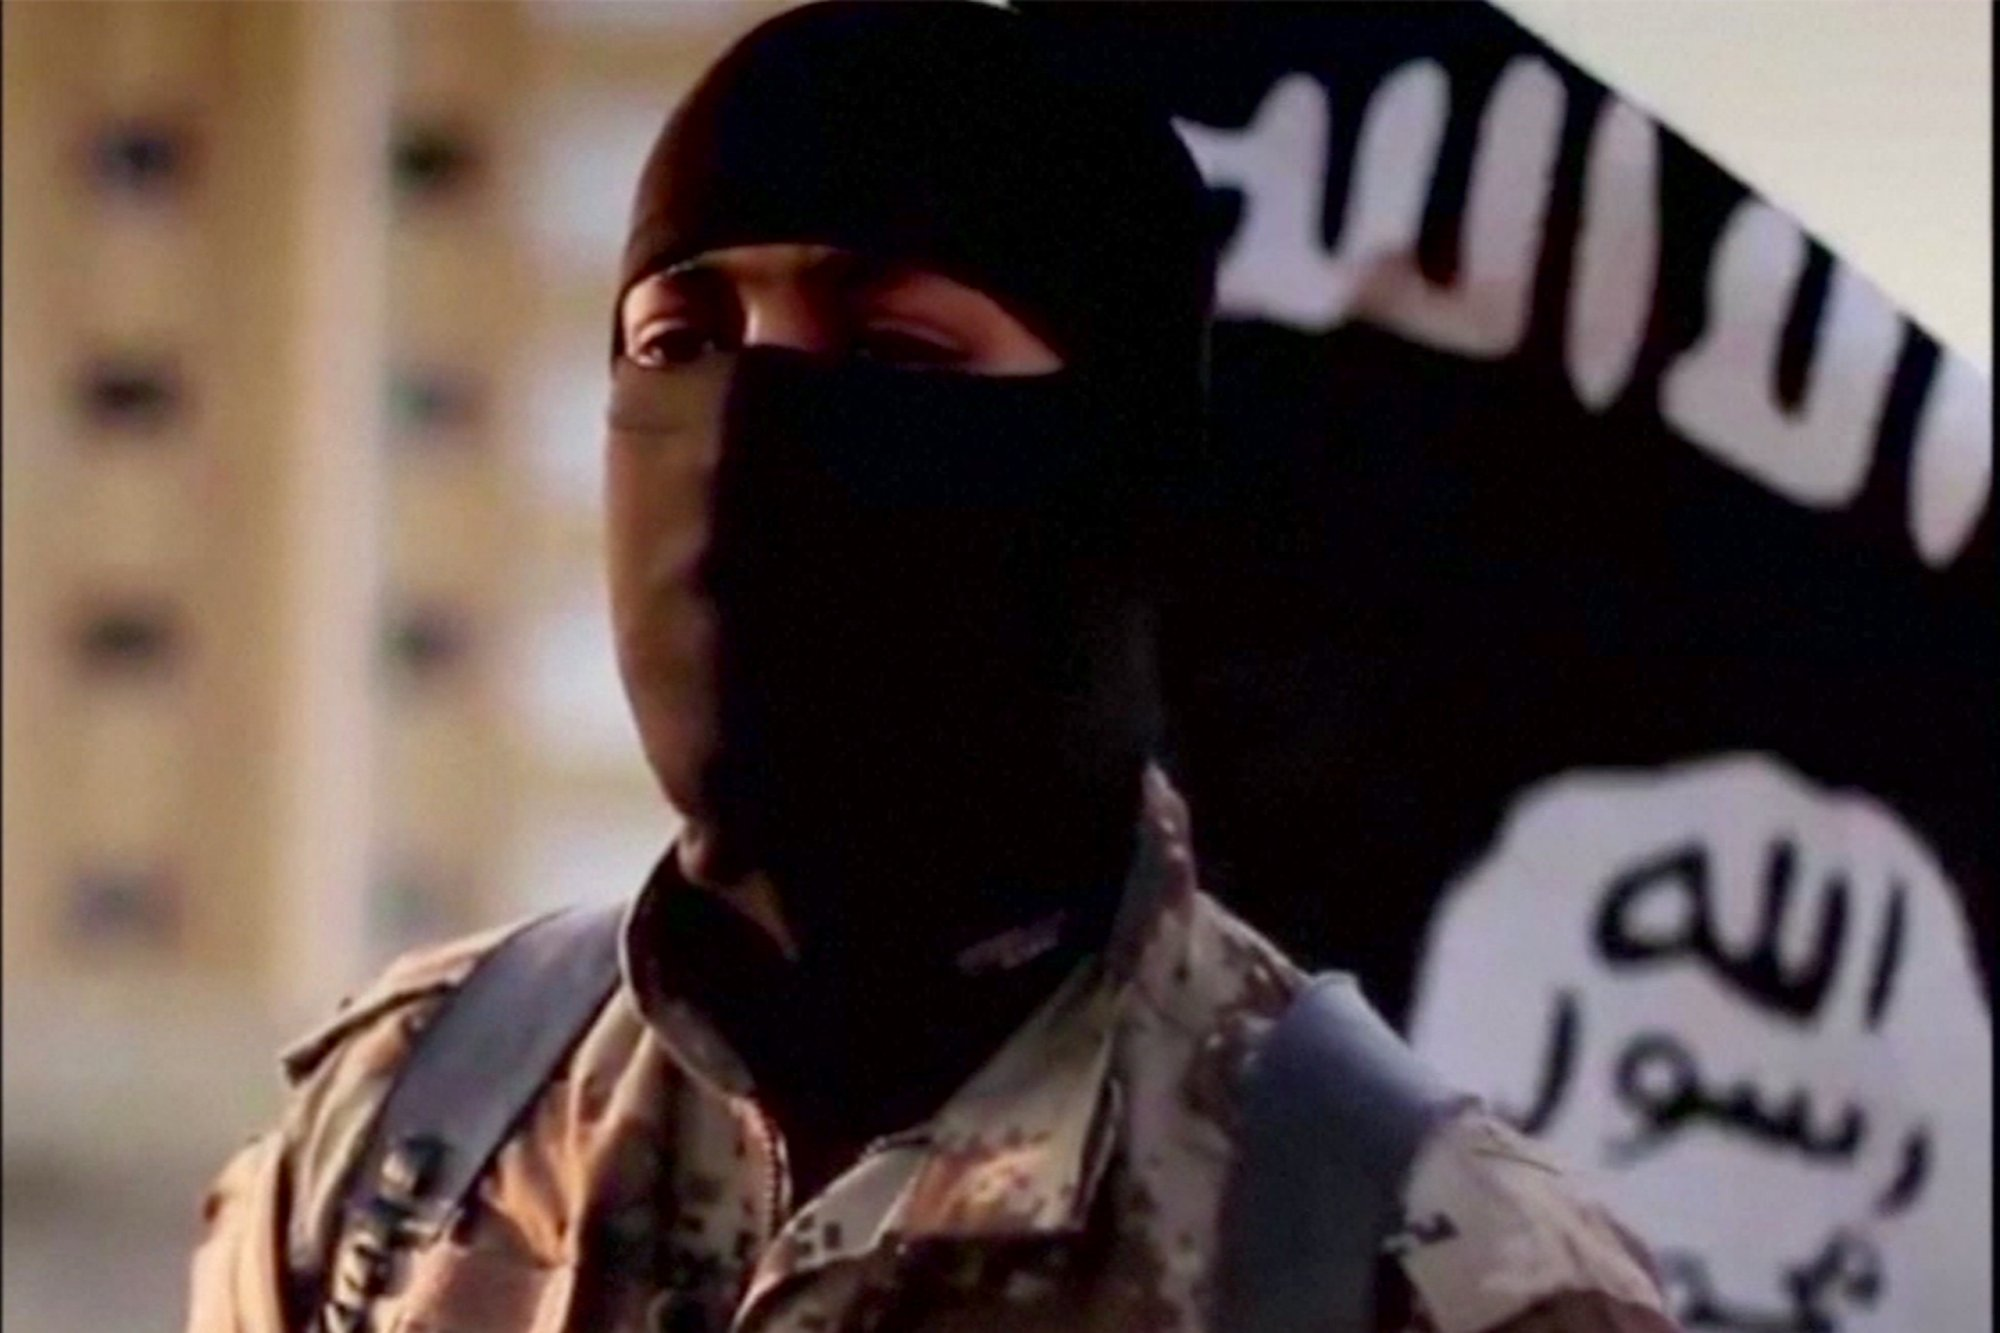 British ISIS Fighters Release Video Threatening Heathrow And Downing Street 1435310106027.cached